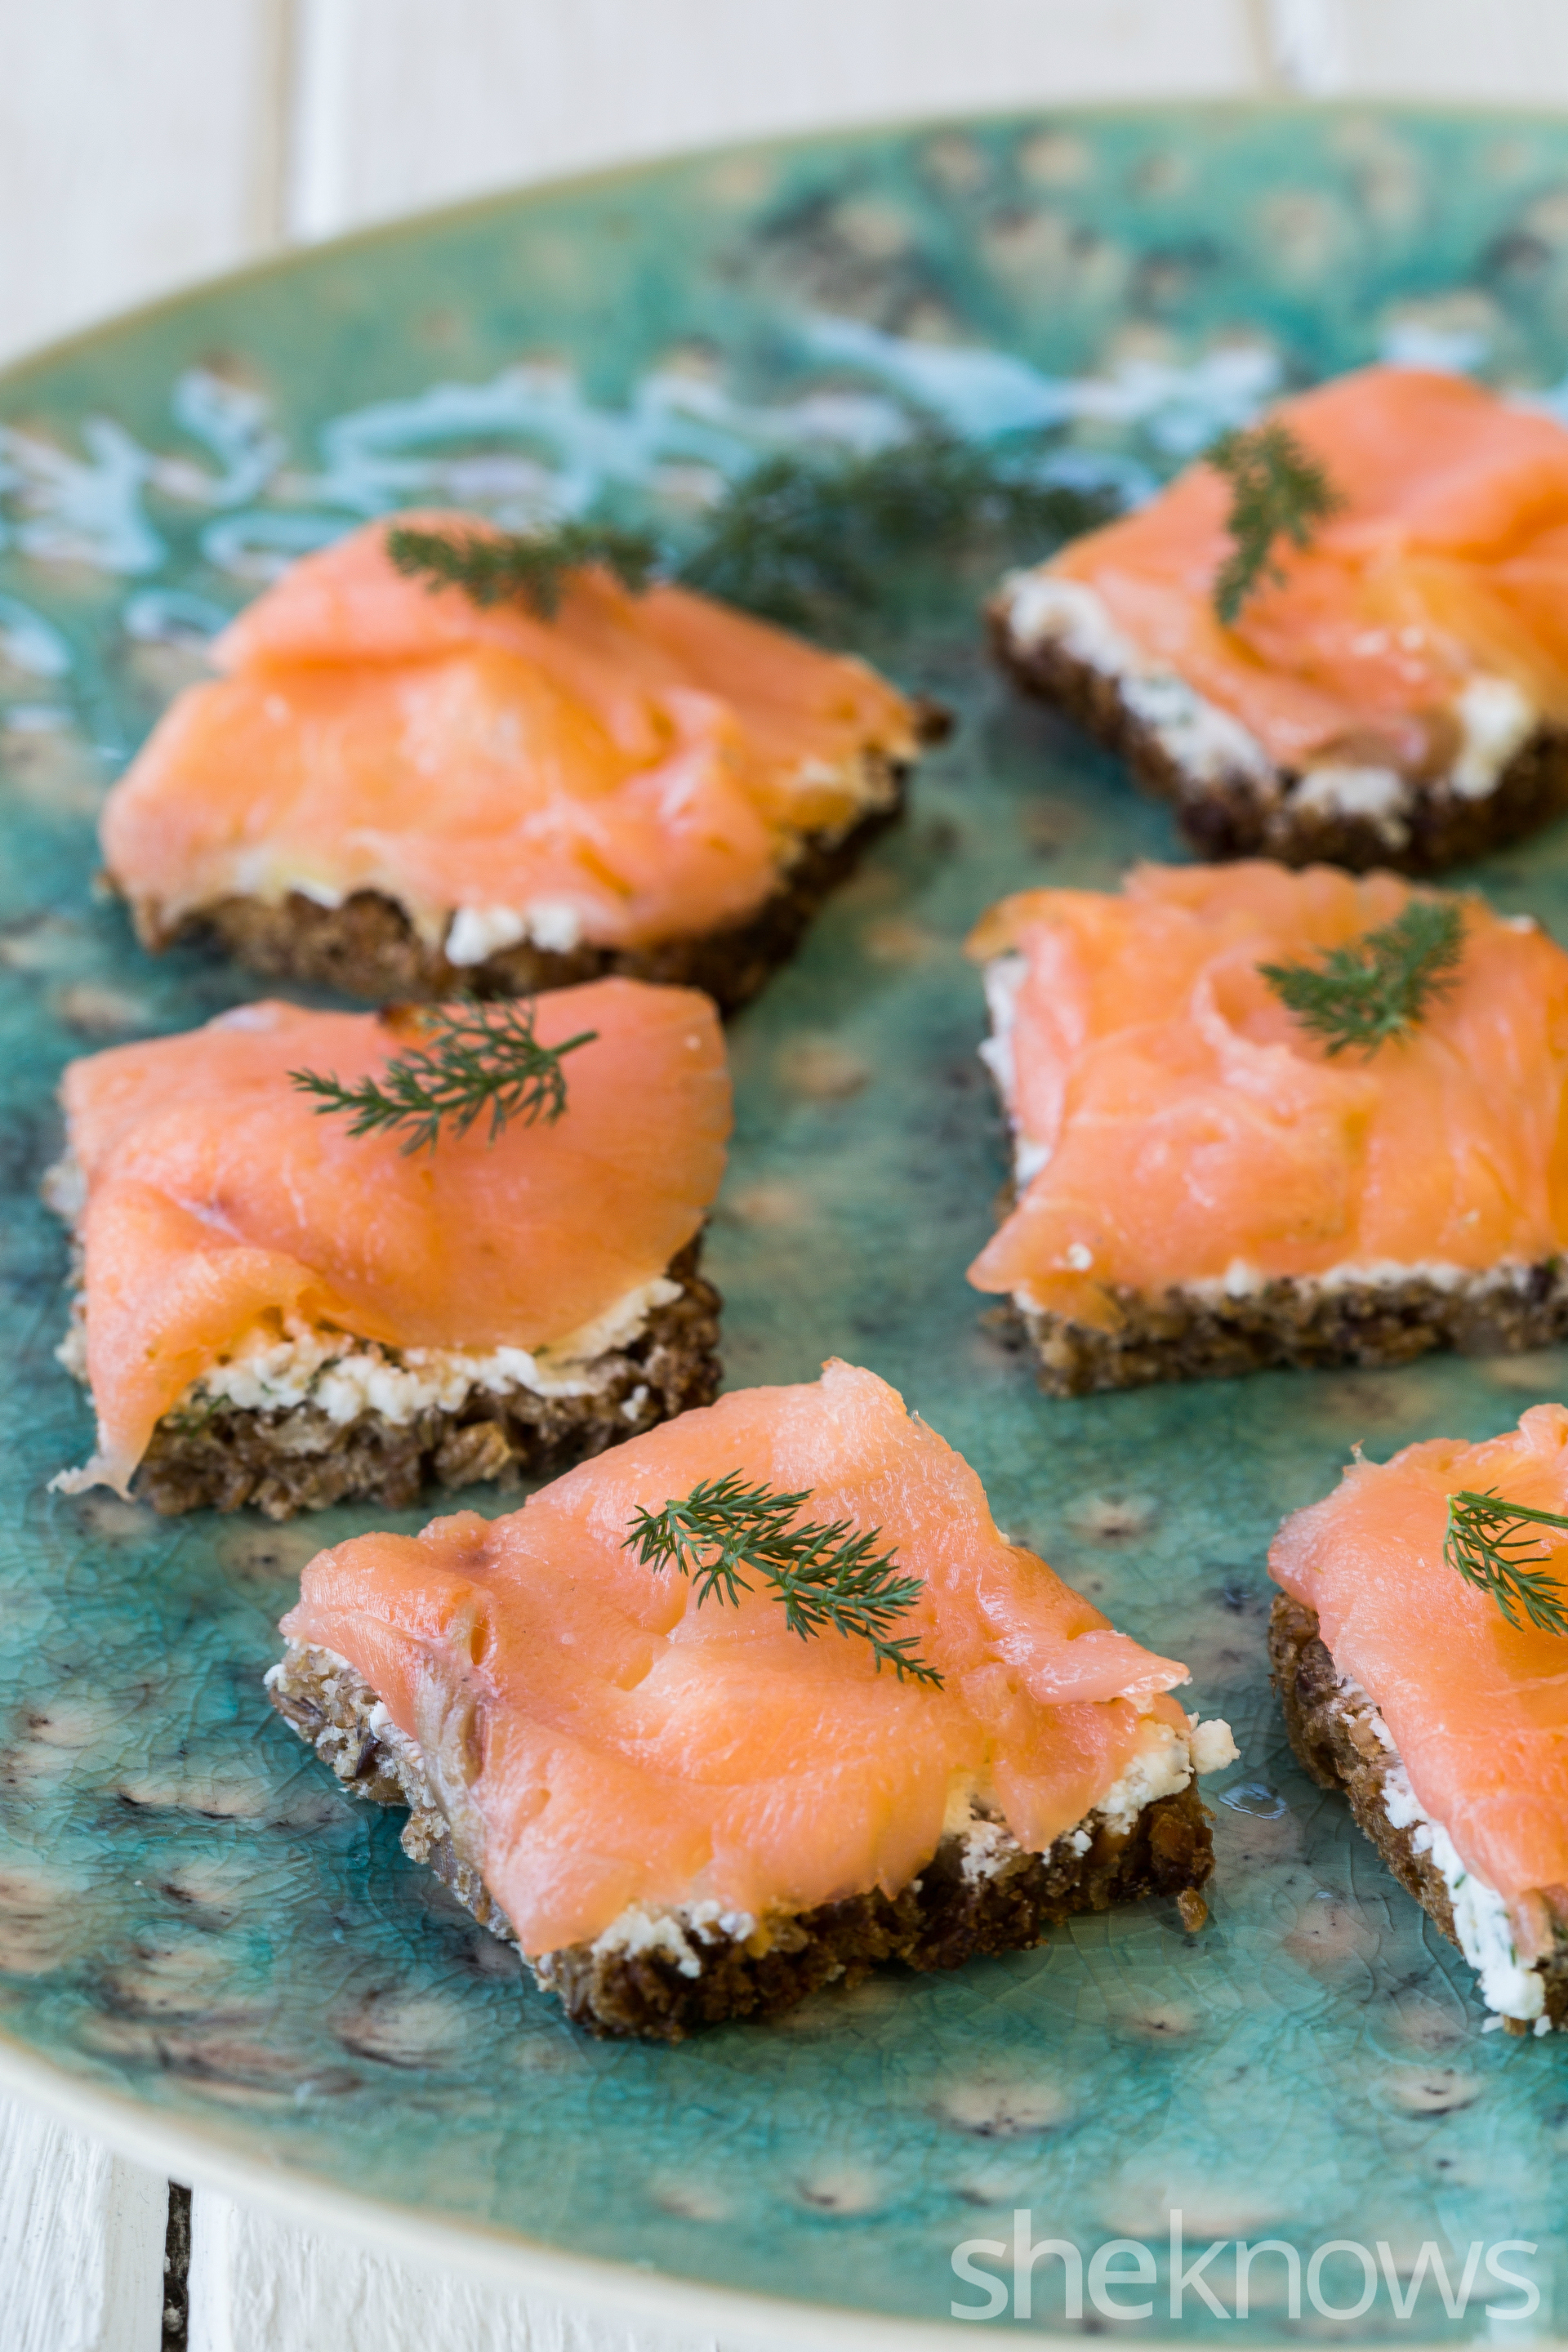 Pumpernickel bread with smoked salmon & cream cheese